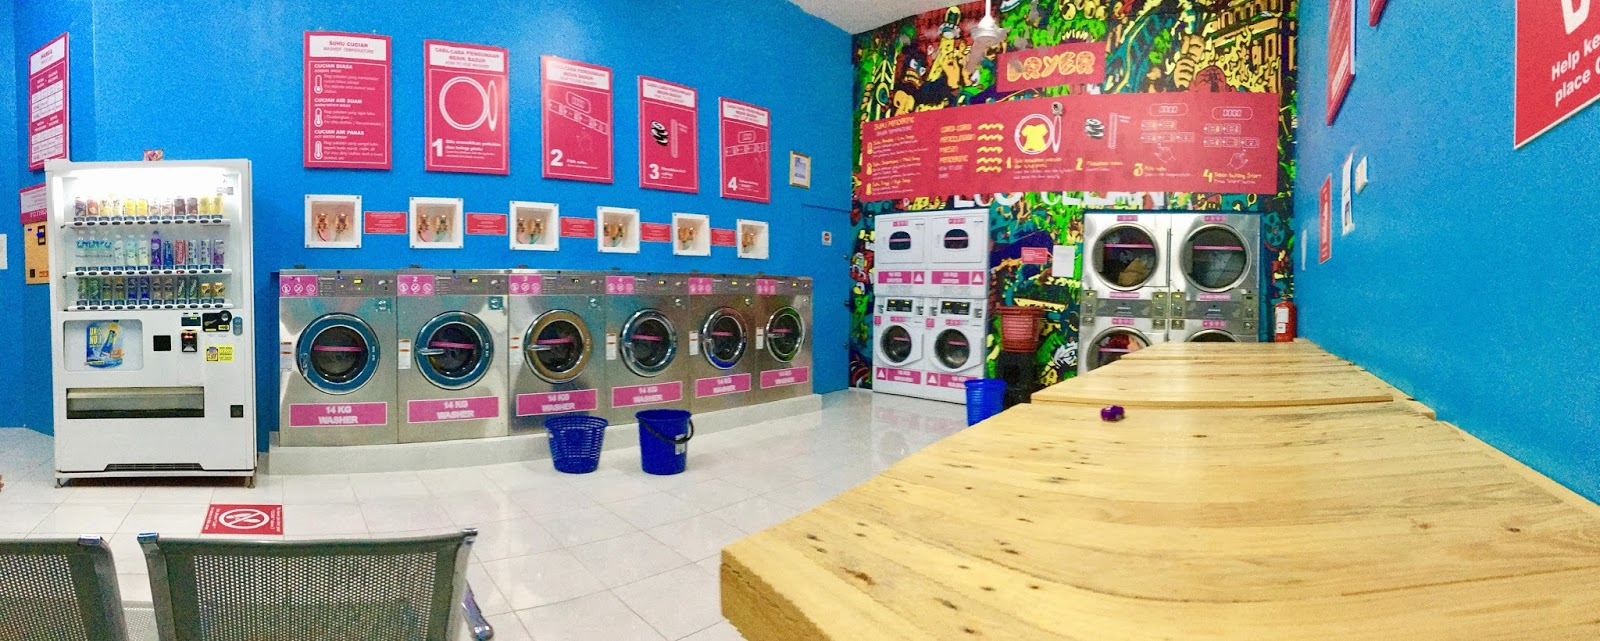 EcoClean Self Service Laundry